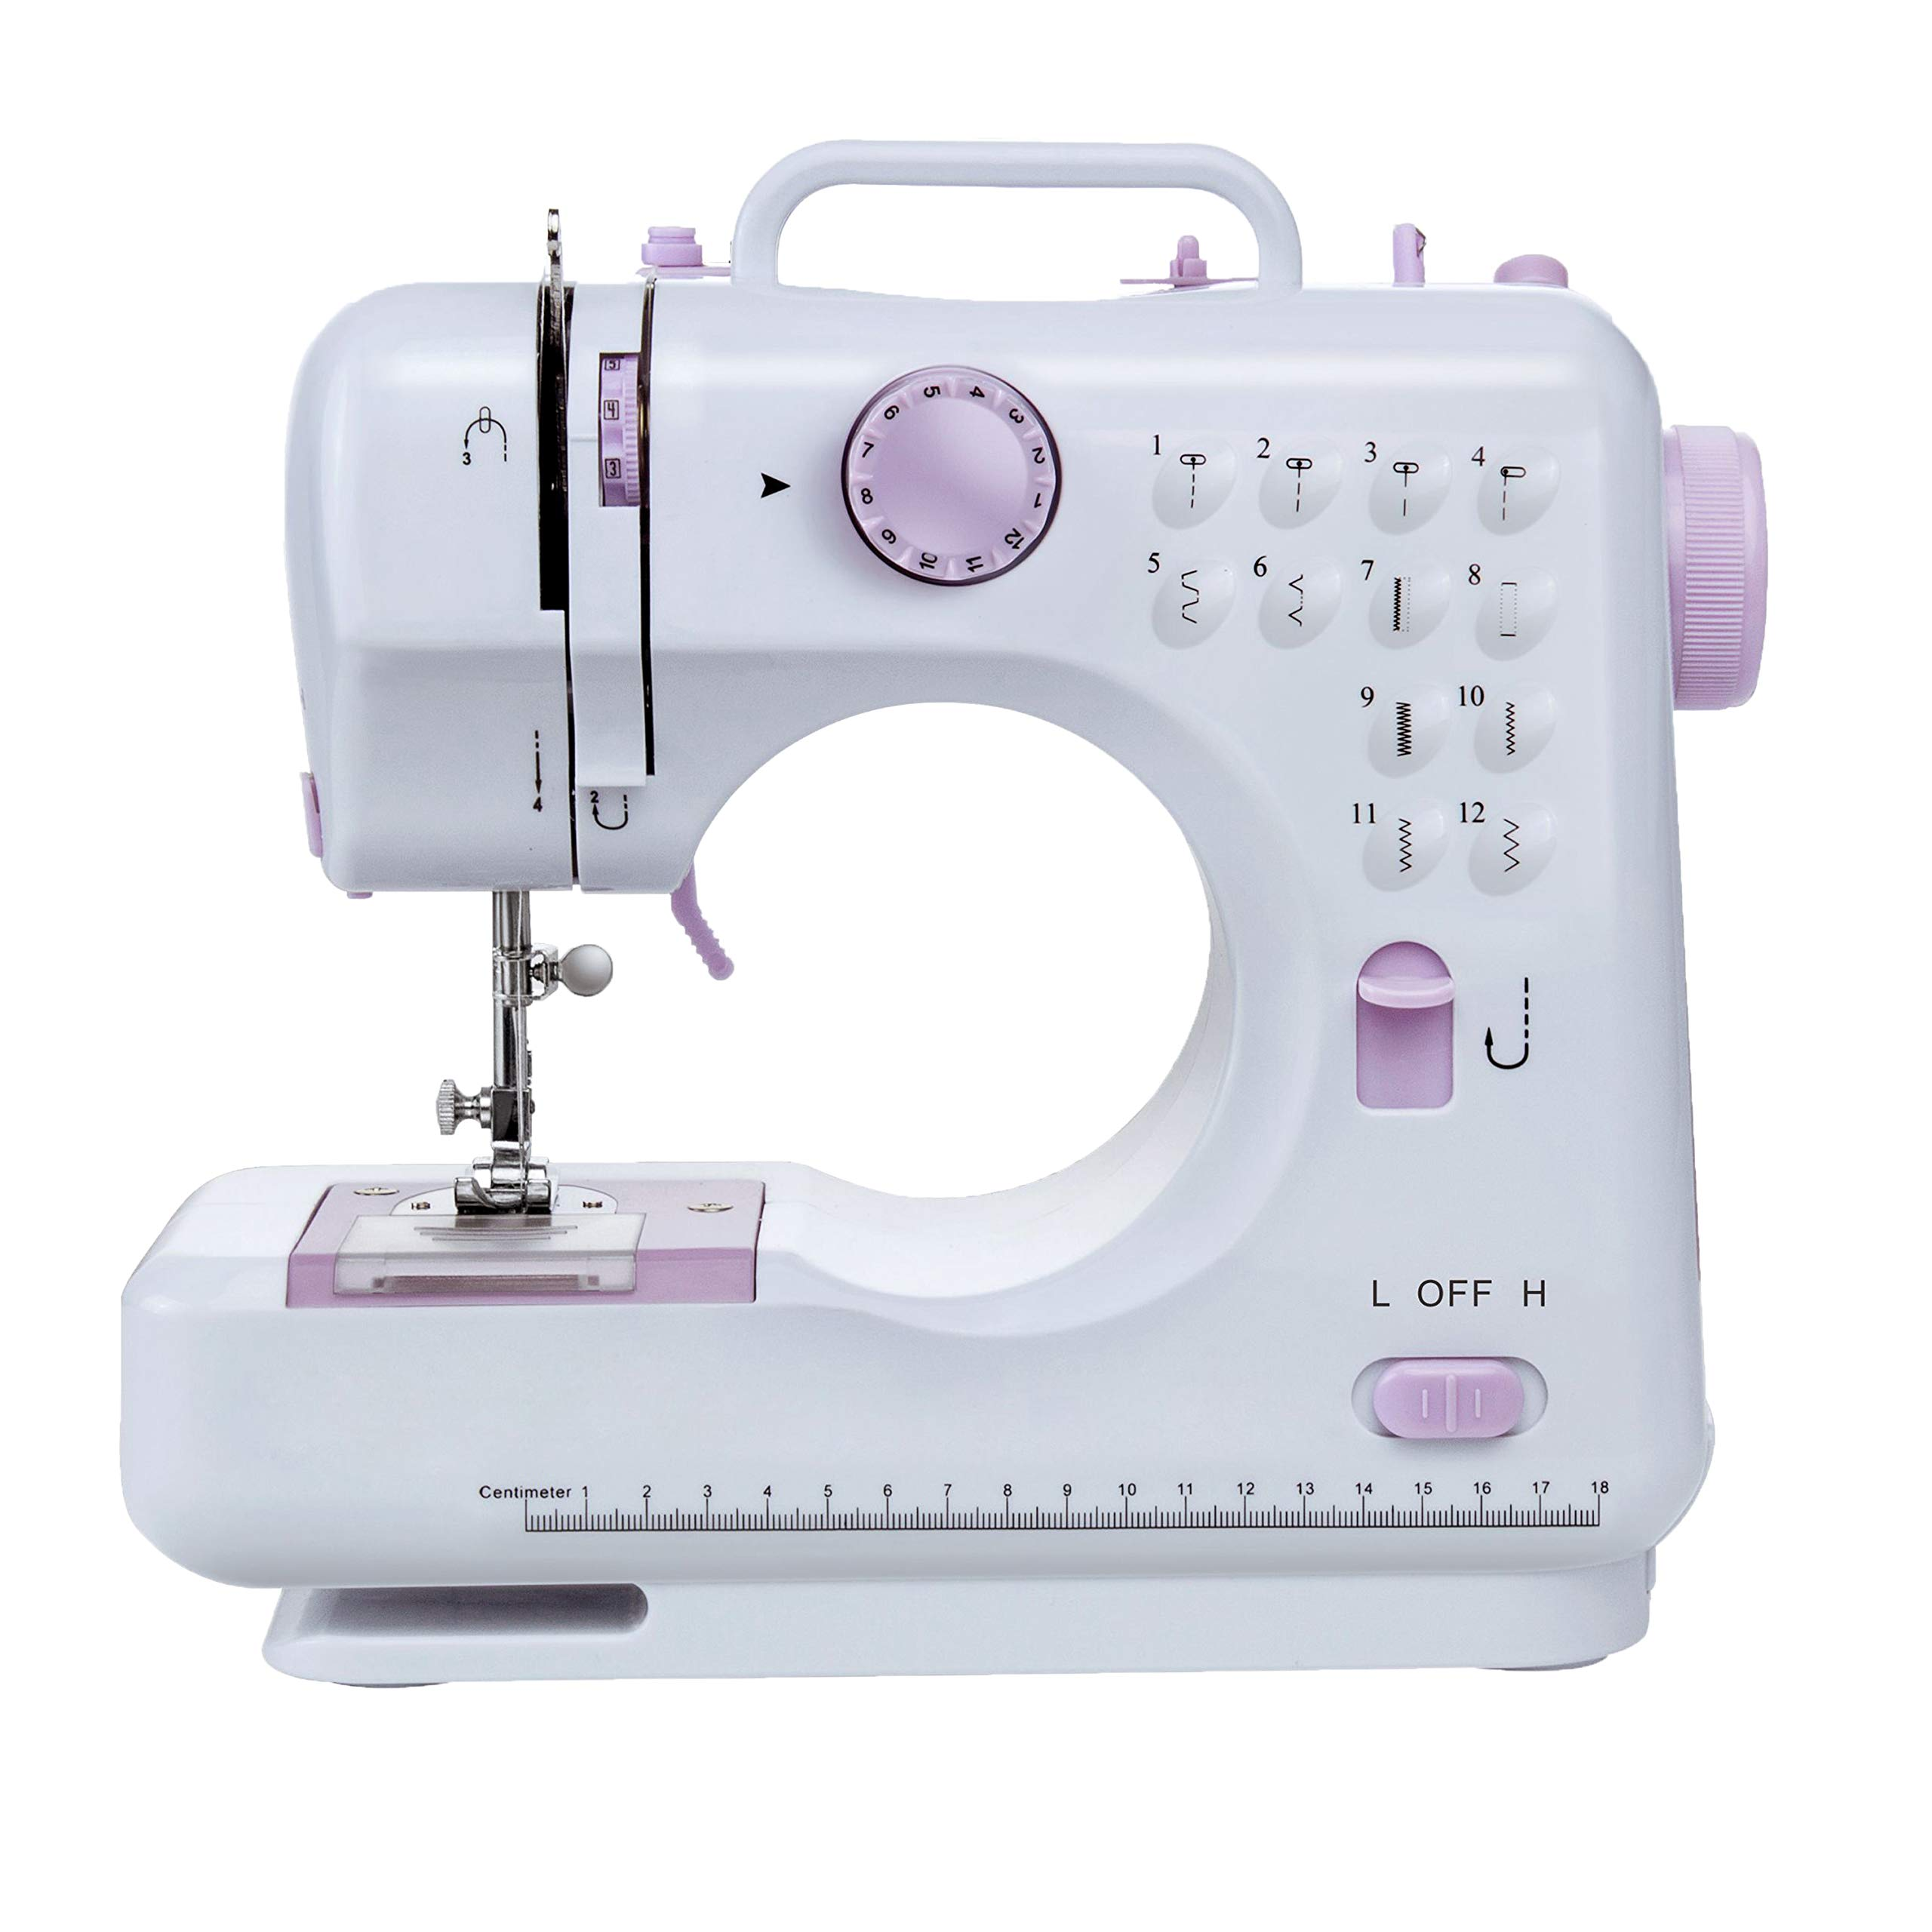 Varmax Sewing Machine with 12 Stitches Multifunctional Sewing Machine with Zigzags Backstitch Buttonholing by Varmax